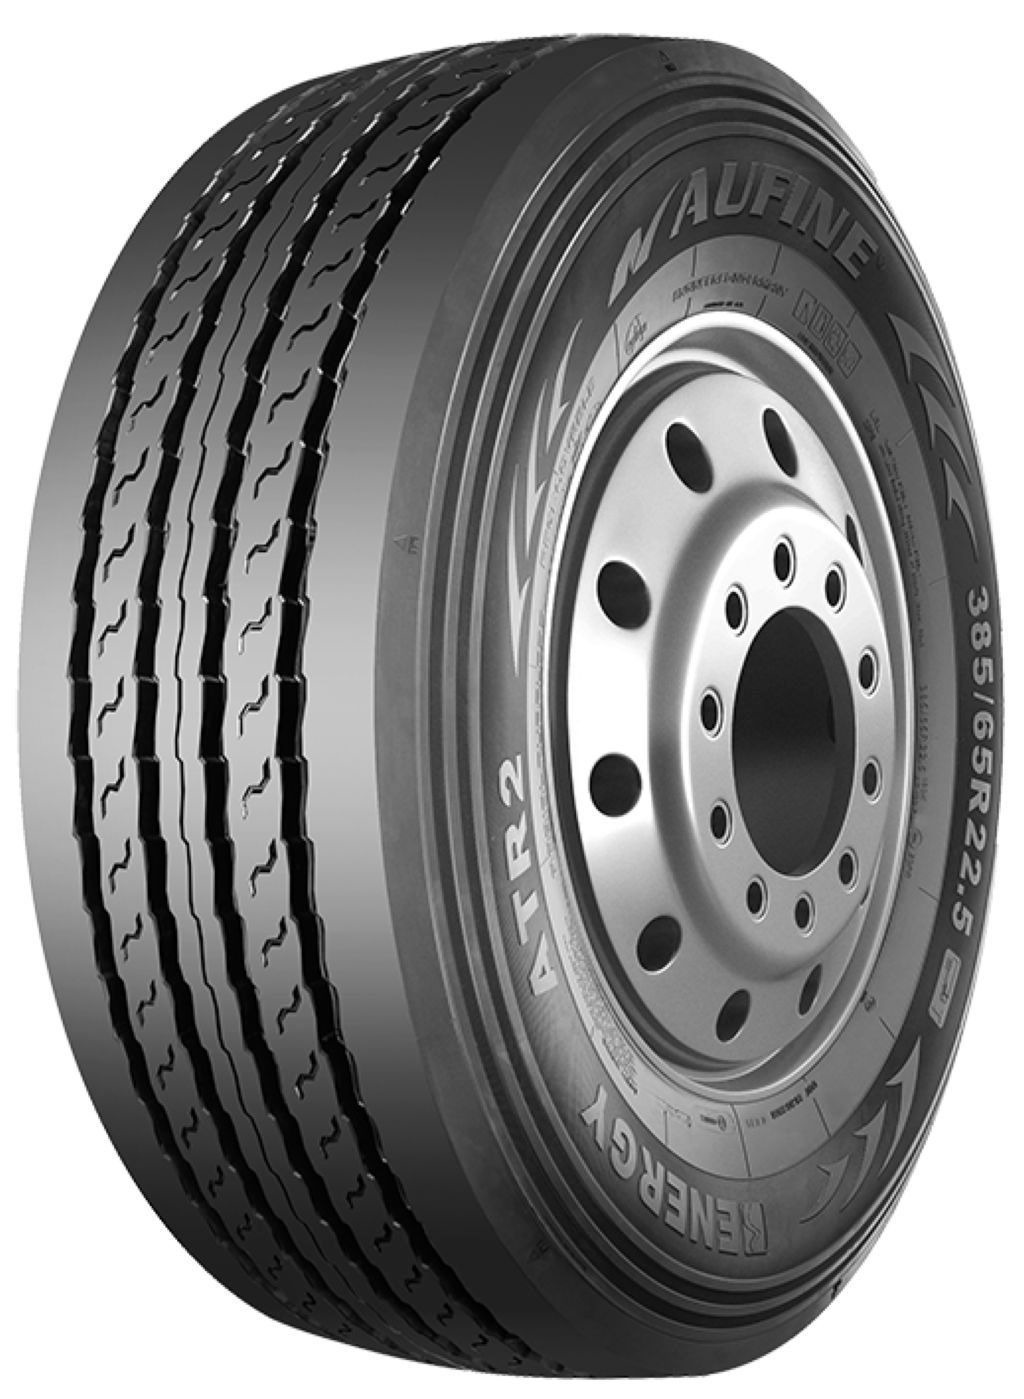 Anvelopa 385/65 R22,5 (Energy ATR2) Aufine remorca